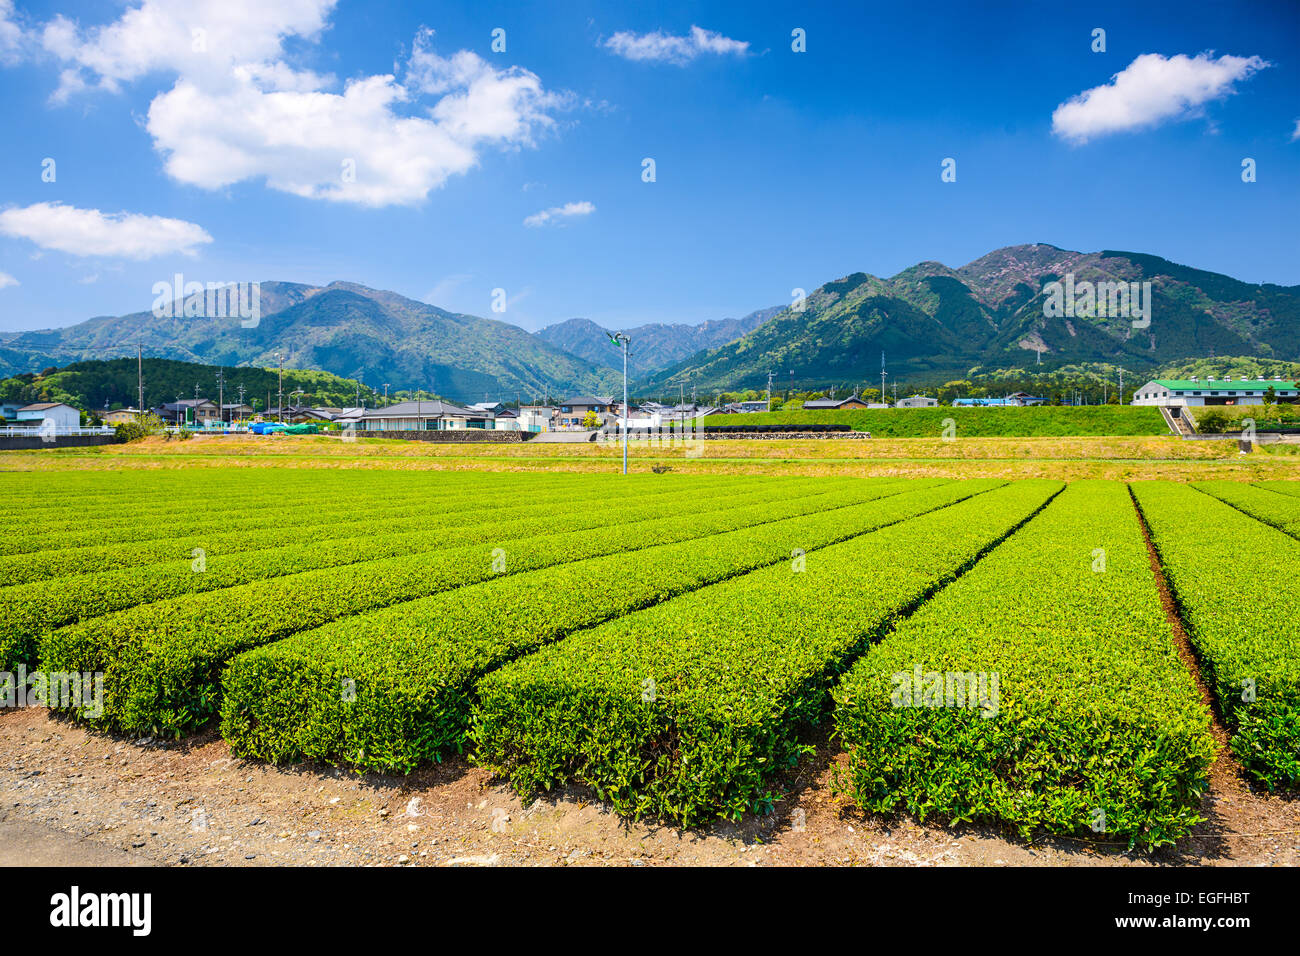 Tea plantation landscape in Yokkaichi, Japan. - Stock Image